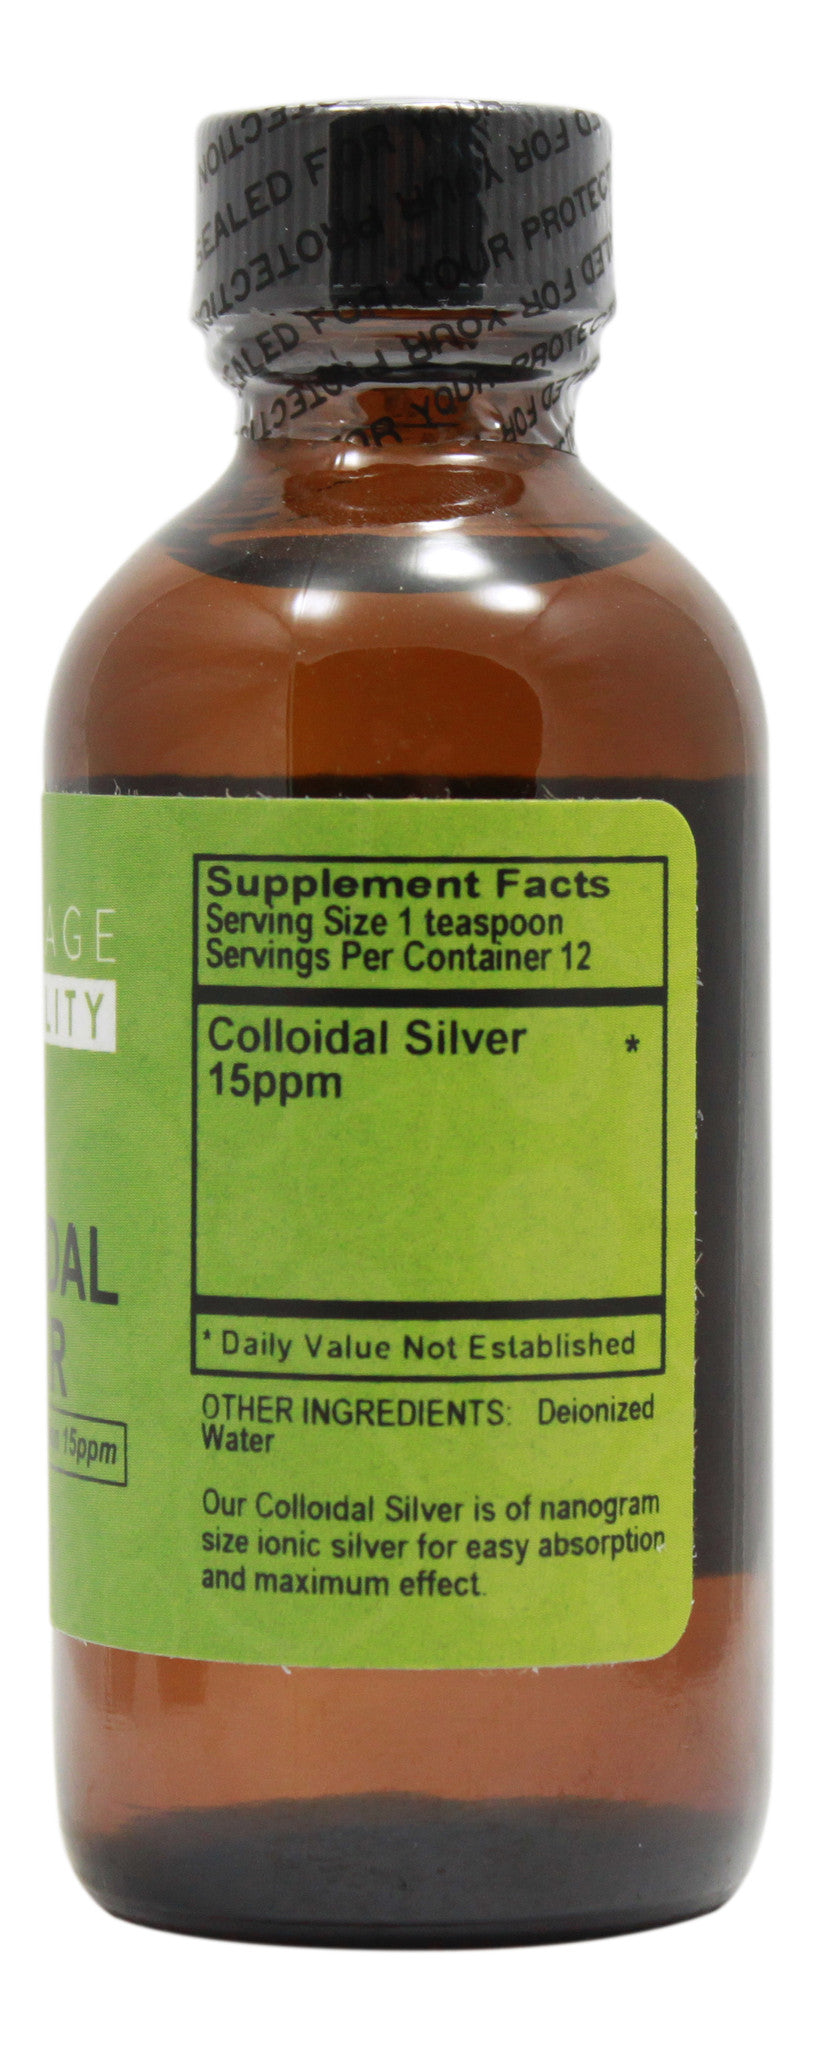 Collodial Silver - 2 fl oz Supplement Facts